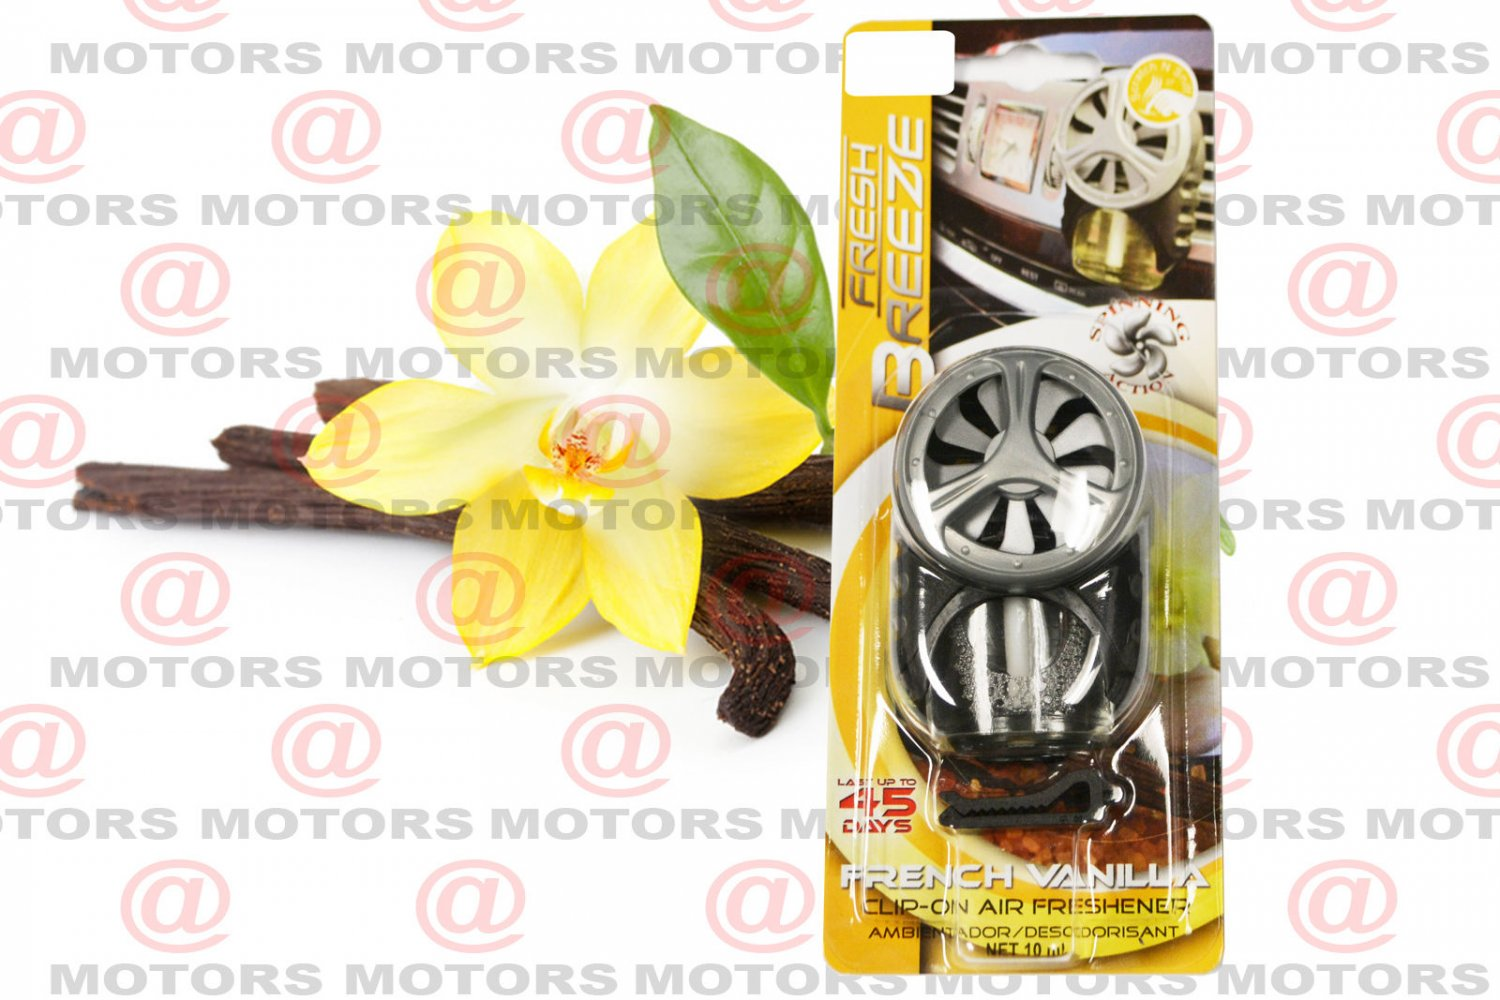 Car Air Freshener Vanilla Clip-on Net 10ml Last Up To 45 Days Spinning Action